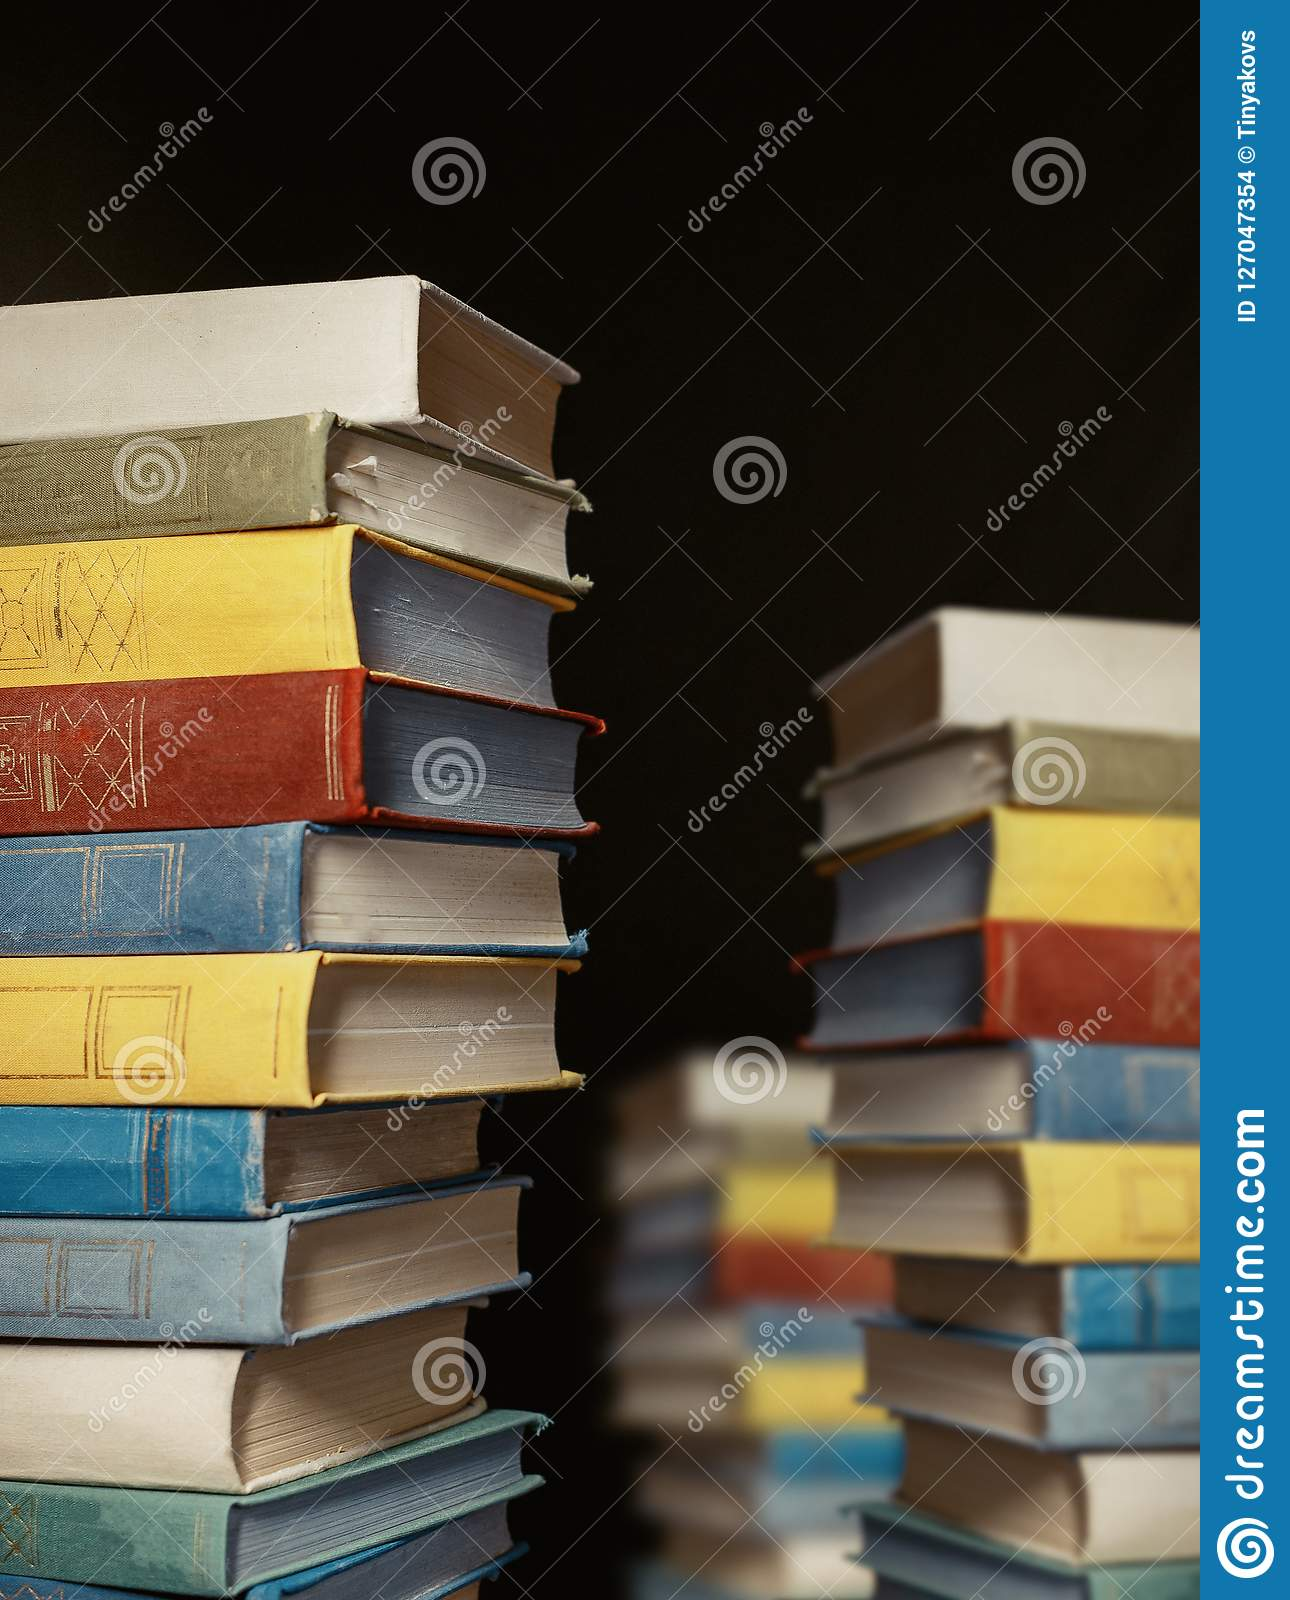 Concept Of Education And Knowledge. Tower Building Of Old Colorful Books On Black Background